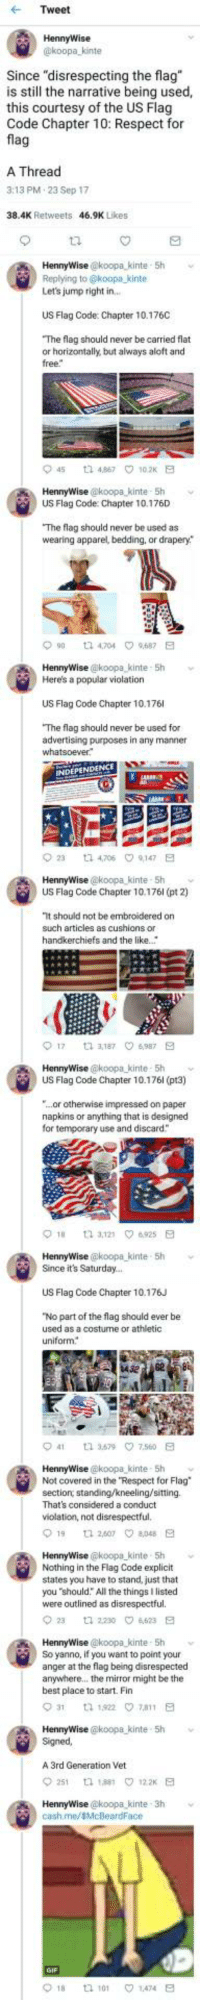 "<p>Flag respect? (via /r/BlackPeopleTwitter)</p>: Tweet  HennyWise  koopa kinte  Since ""disrespecting the flag  is still the narrative being used,  this courtesy of the US Flag  Code Chapter 10: Respect for  fla  A Thread  3:13 PM.23 Sep 17  38.4K Retweets  46.9K Likes  HennyWise @koopa_kinte 5h  Replying to @koopa kinte  Let's jump right in  US Flag Code: Chapter 10.176C  The flag should never be carried flat  or horizontally, but always aloft and  free  45 t2 467 102K E  US Flag Code: Chapter 10.176D  The flag should never be used as  wearing apparel, bedding, or drapery*  90 t 4704 9687 E  HennyWise @koopa kinte 5h  Here's a popular violation  US Flag Code Chapter 10.176  The flag should never be used for  advertising purposes in any manner  23  ta 4,706  9,147  HennyWise @koopa kinte- Sh  US Flag Code Chapter 10.176l (pt 2)  It should not be embroidered on  such articles as cushions or  handkerchiefs and the like.  017  3,187 ㅇ6,987  HennyWise @koopa kinte- 5h  US Flag Code Chapter 10.176l (pt3)  ...or otherwise impressed on paper  napkins or anything that is designed  for temporary use and discard  HennyWise @koopa-kinte , 5h  Since it's Saturday..  ﹀  US Flag Code Chapter 10.176J  No part of the flag should ever be  used as a costurne or athletic  uniform  41  3.579\7.560  HennyWise @koopa kinte 5h  Not covered in the Respect for Flag  section, standing/kneeling/sitting.  That's considered a conduct  violation, not disrespectful.  19 1 260708E  HennyWise @koopa kinte 5h  Nothing in the Flag Code explicit  states you have to stand, just that  you ""should: All the things I listed  were outlined as disrespectful.  2  2230 4623 E  HennyWise @koopa kinte 5h v  So yanno, if you want to point your  anger at the flag being disrespected  anywhere.. the mirror might be the  best place to start. Fin  HennyWise @koopa kinte 5h  Signed  A 3rd Generation Vet  251 th 188 122 E  cash.me/sMcBeardFace  018  tl 101  1.474 <p>Flag respect? (via /r/BlackPeopleTwitter)</p>"